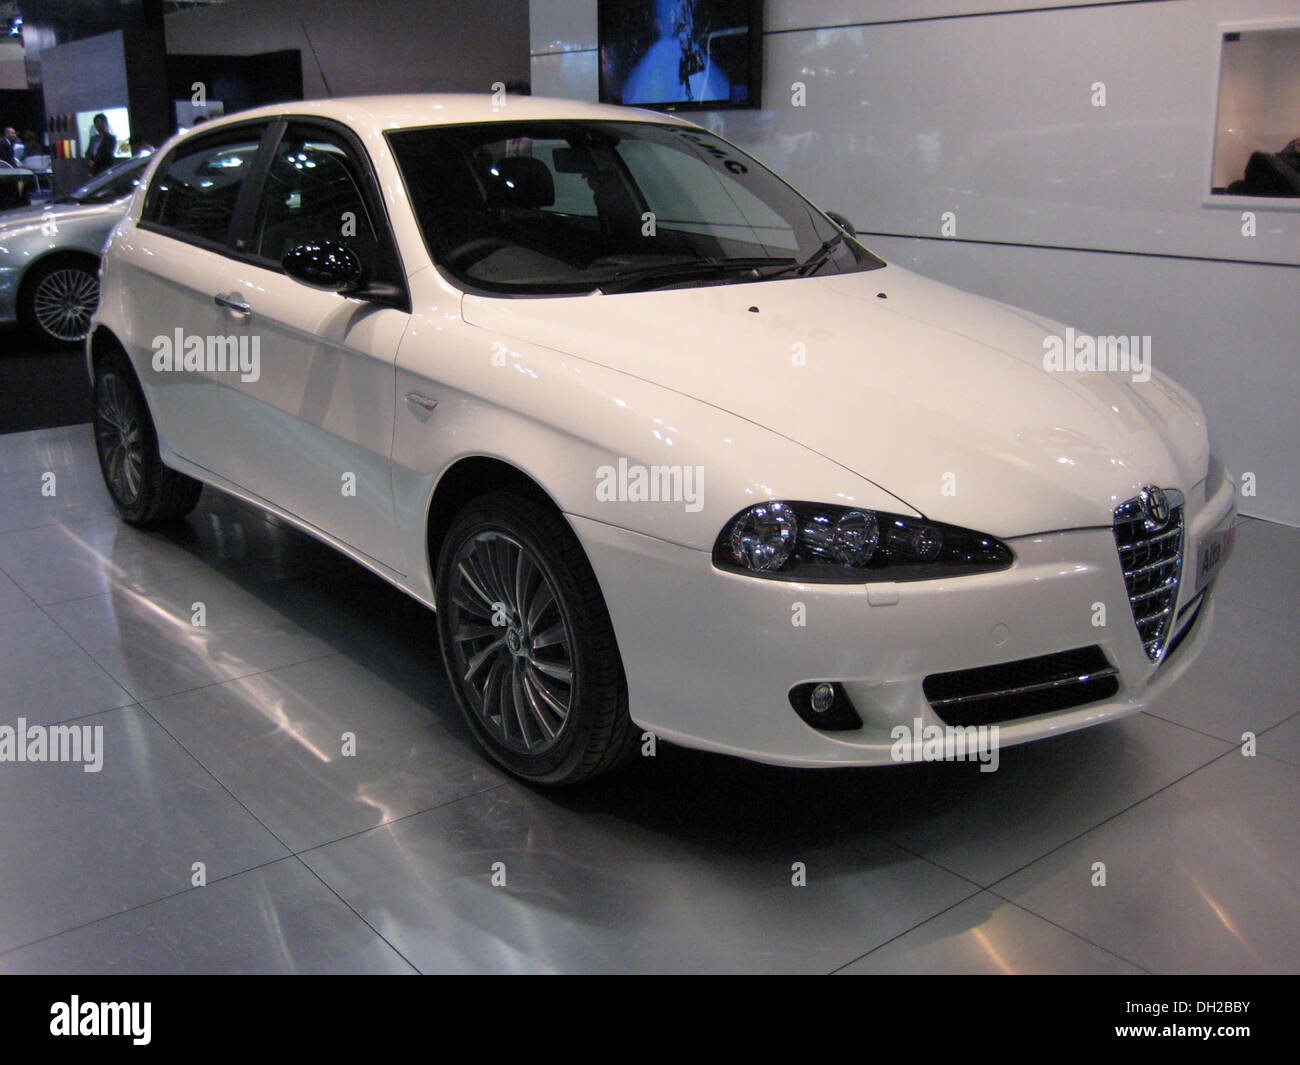 Alfa Romeo 147 High Resolution Stock Photography And Images Alamy